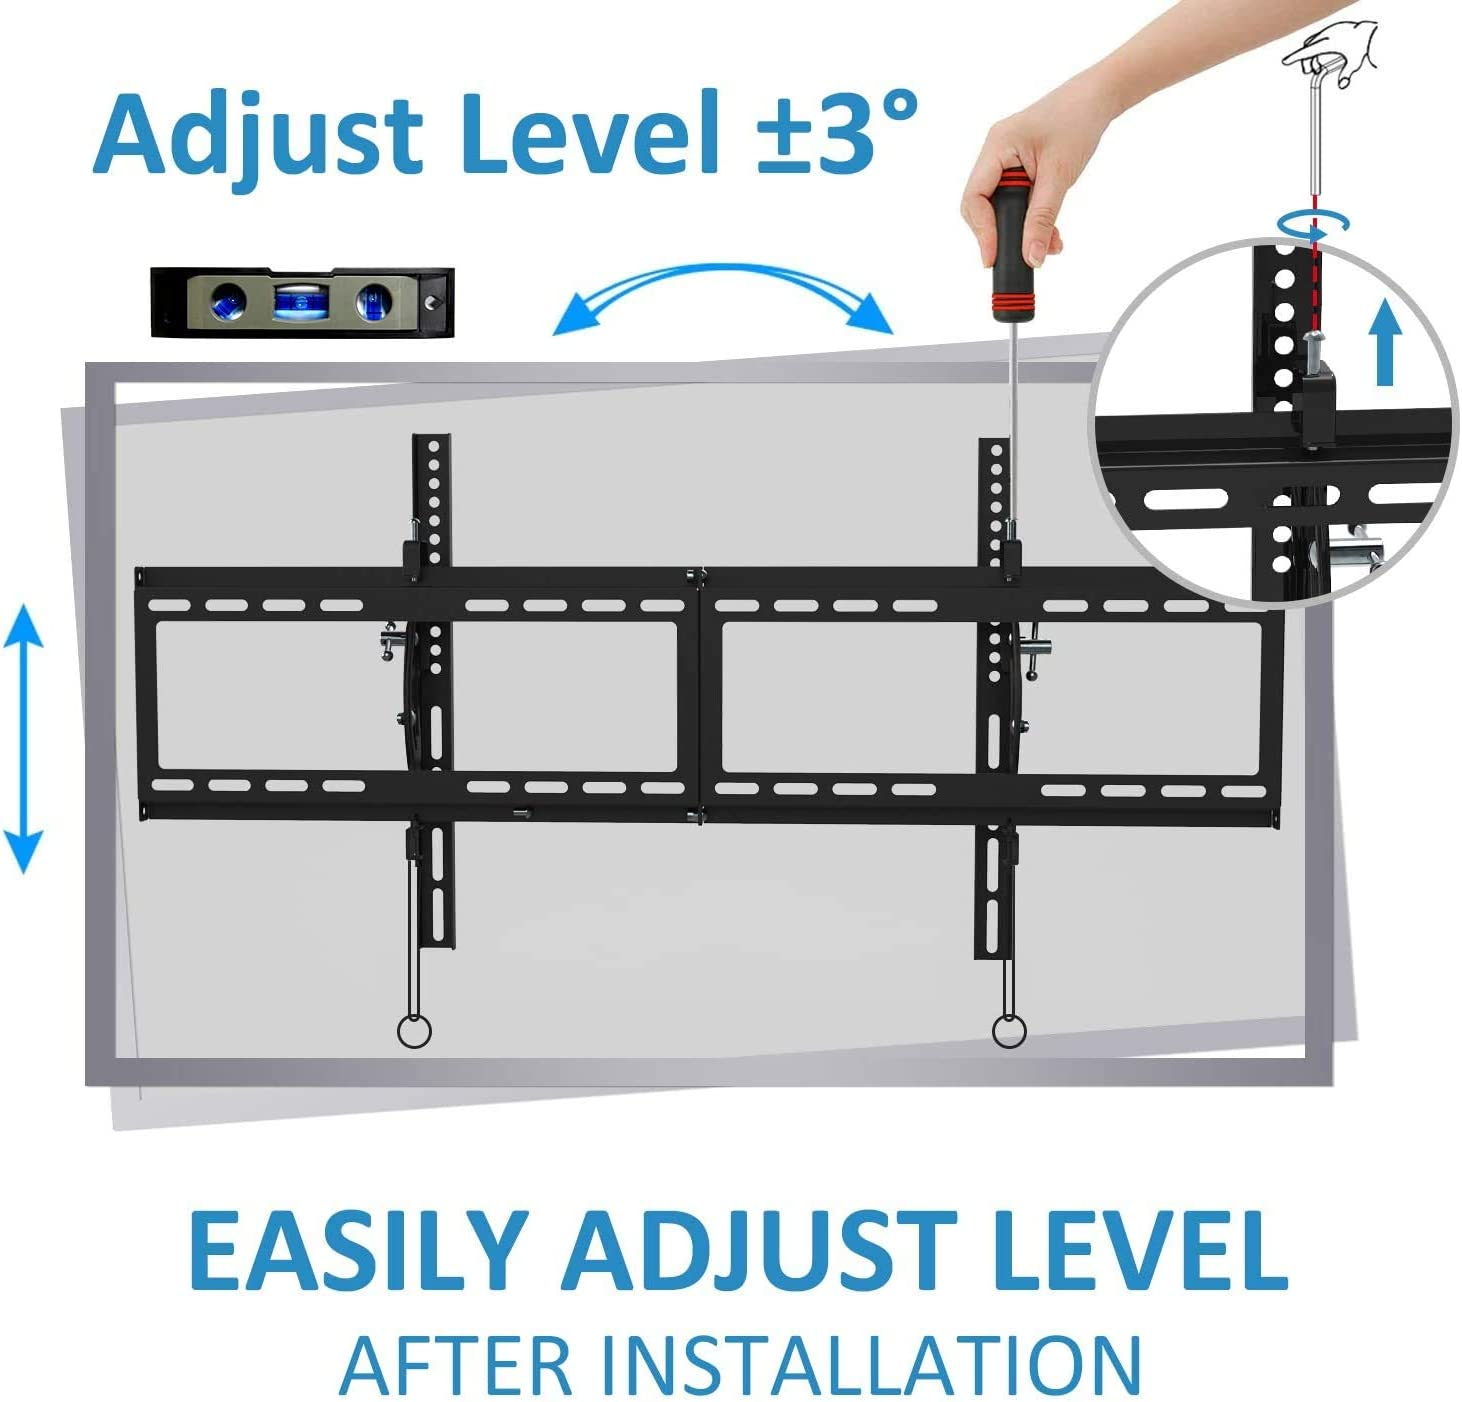 BLUE STONE TV Wall Mount Bracket Tilt Low Profile for Most 40-90 inch with Max VESA 800x400mm Holds up to 165lbs and Fits 16